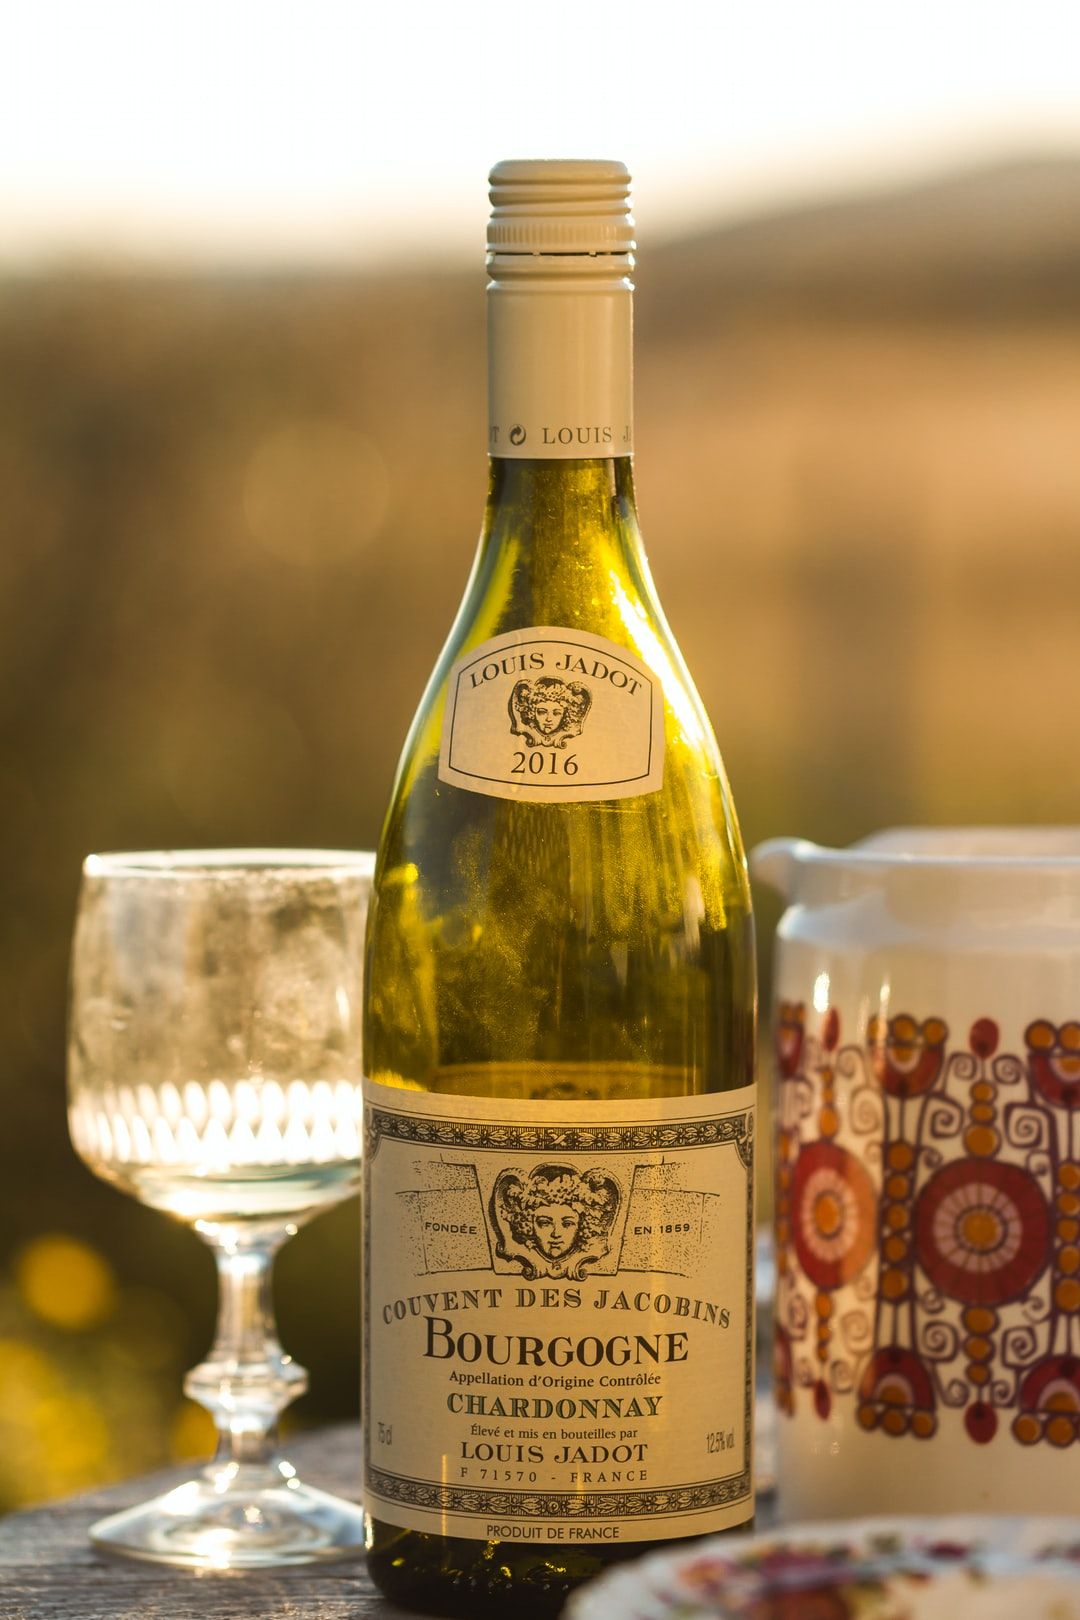 Had to shoot some images of this lovely empty bottle of white wine.